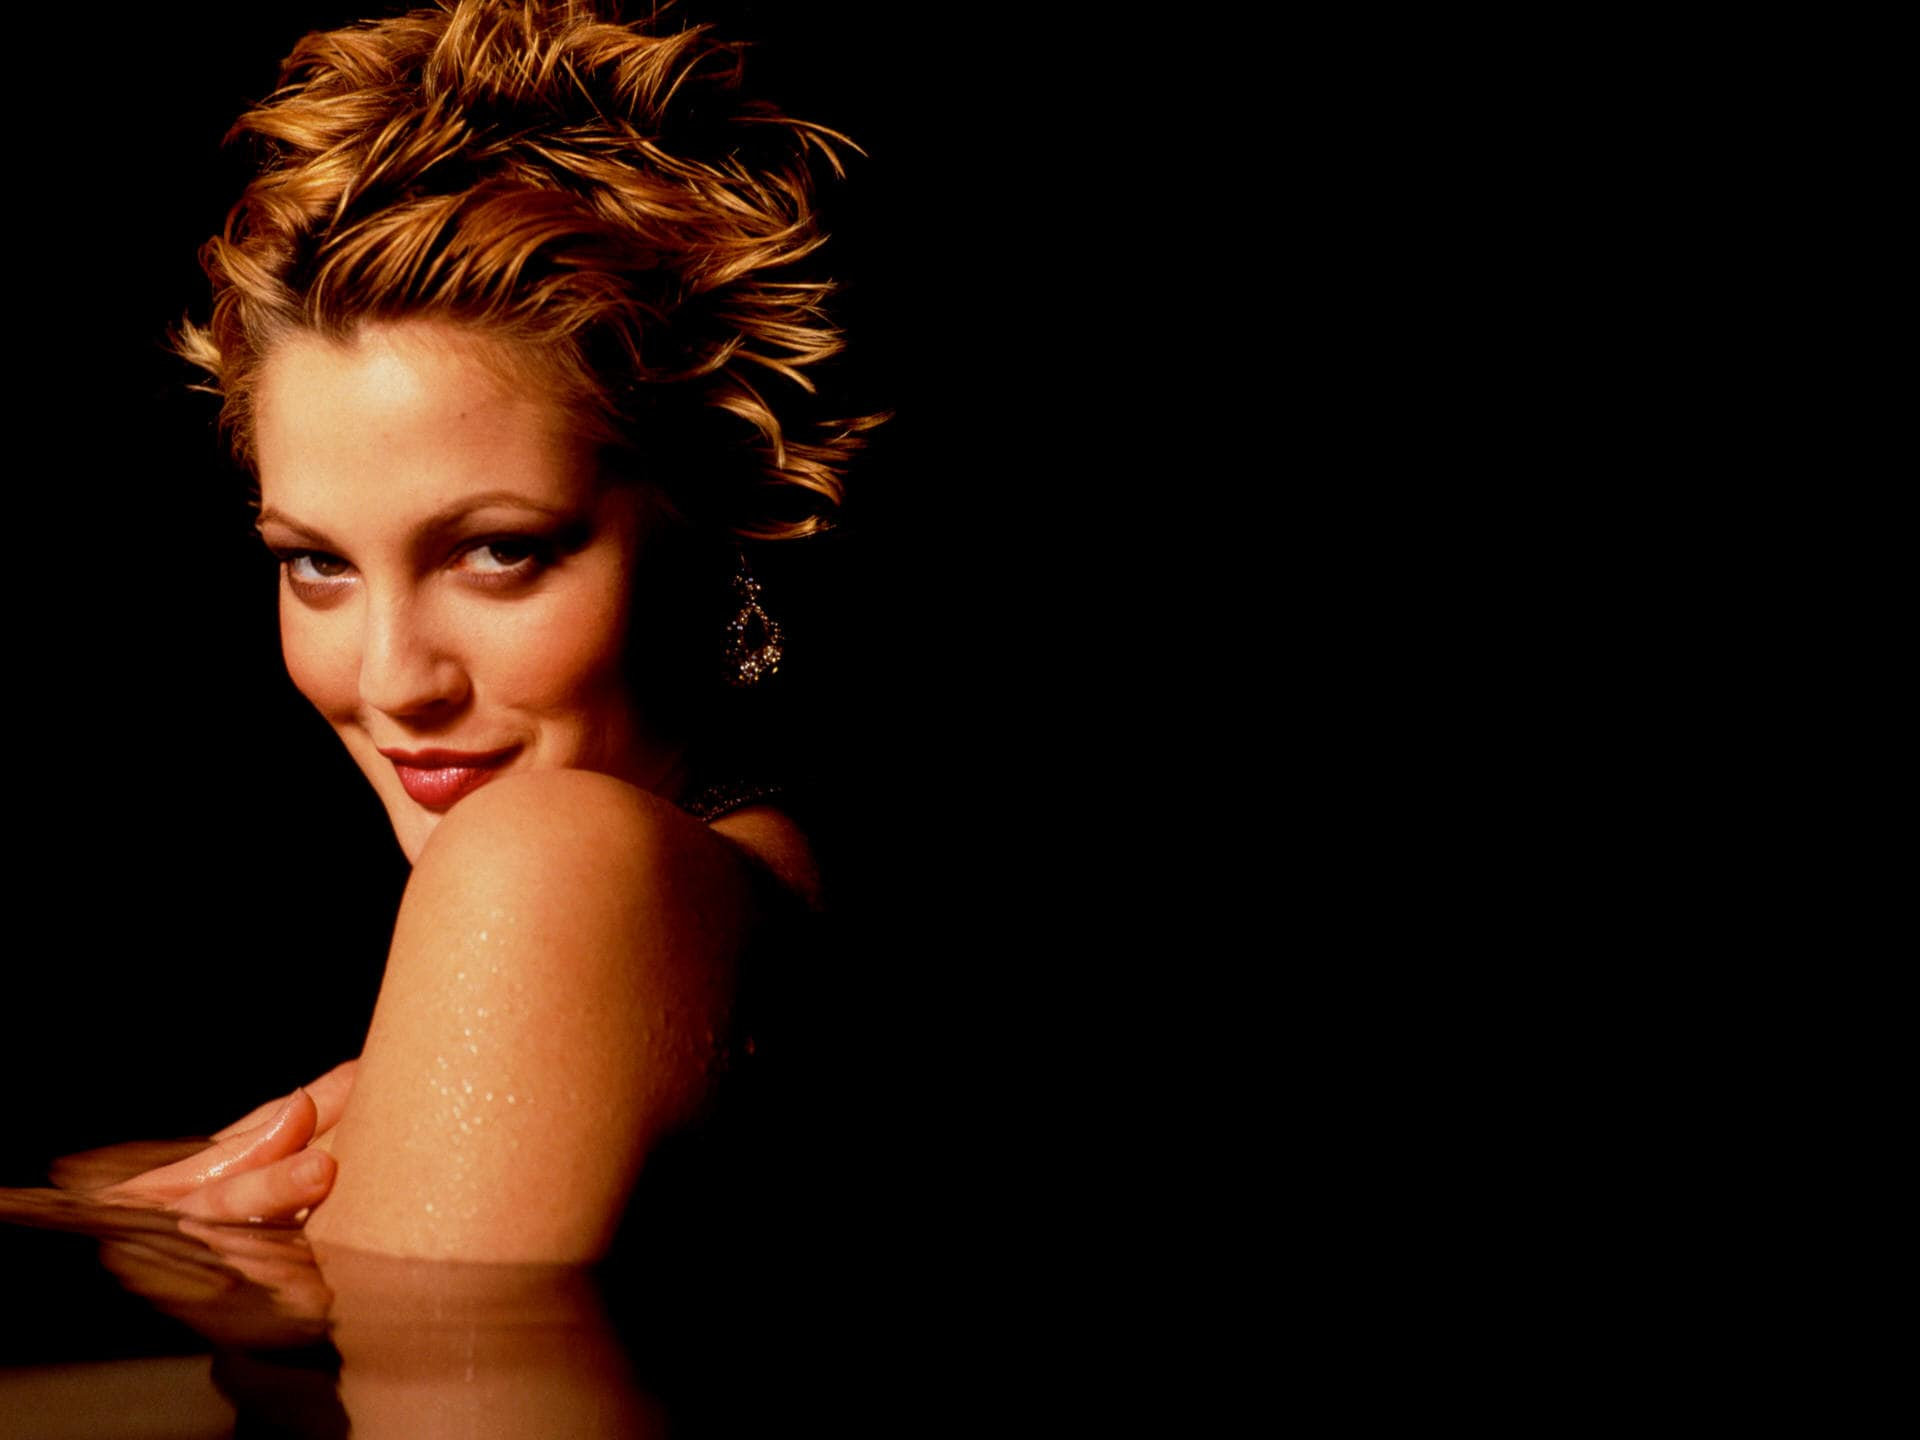 Drew Barrymore Desktop wallpaper